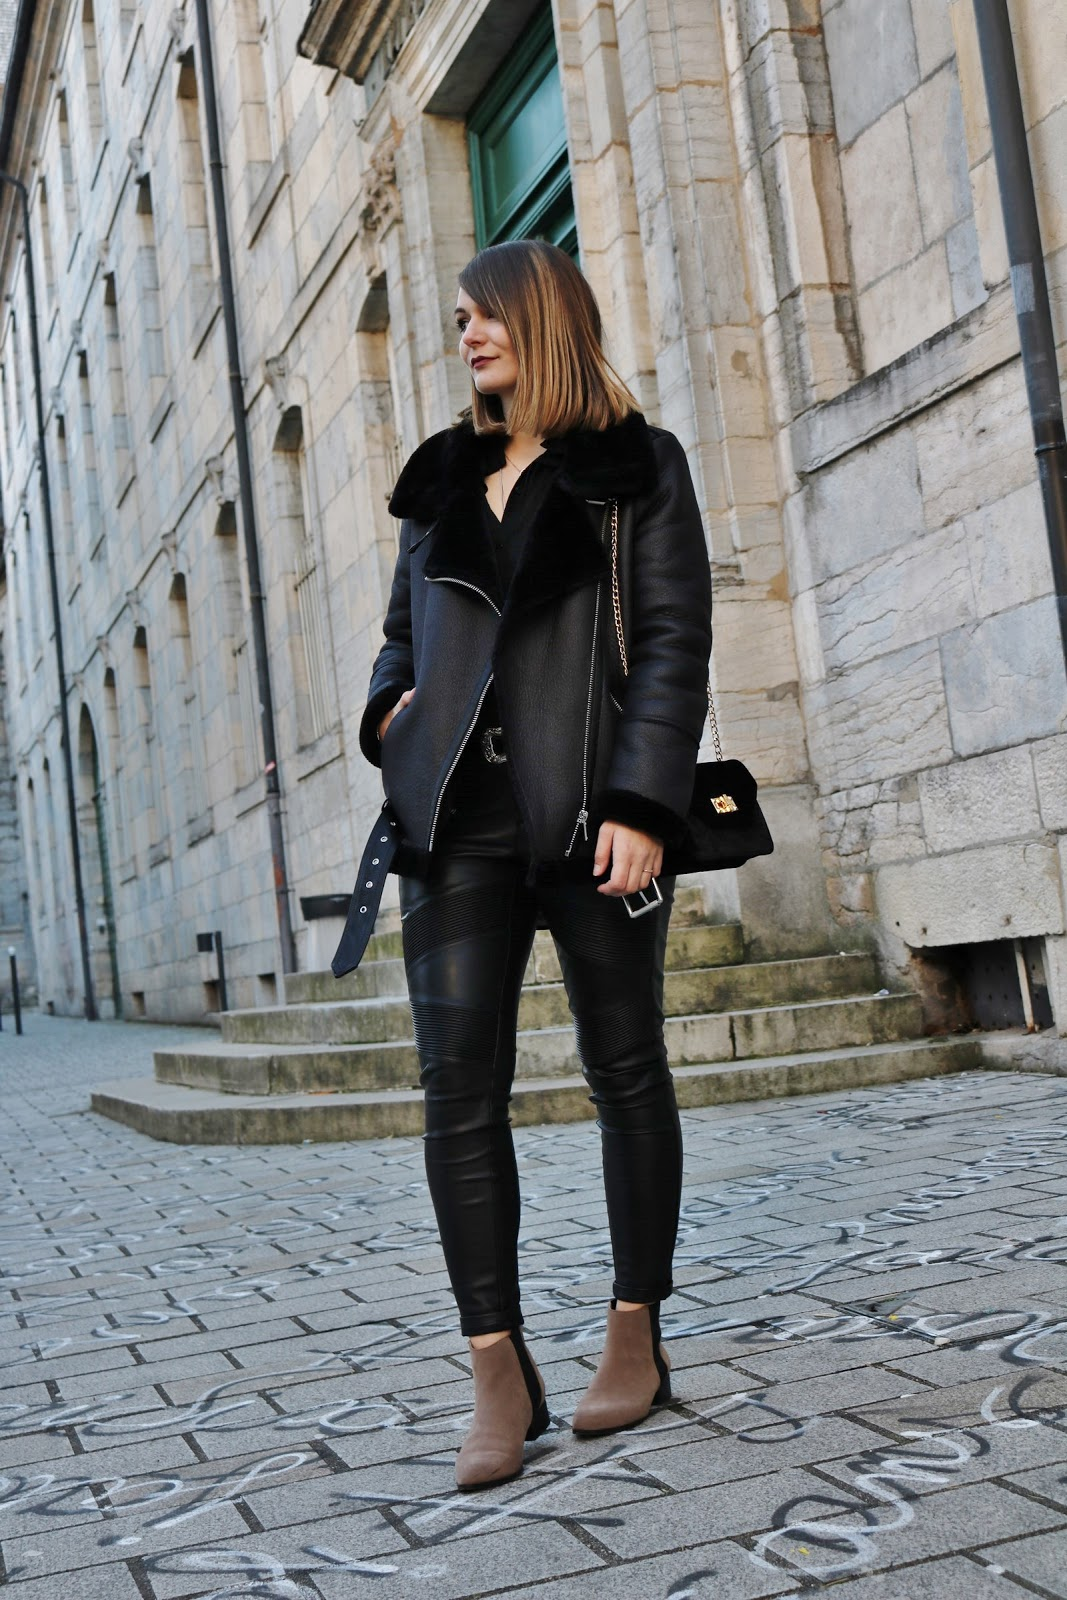 pauline-dress-blog-mode-deco-lifestyle-besancon-doubs-franche-comte-est-fille-blogueuse-tenue-look-outfit-ootd-bombardier-noir-total-look-chelsea-boots-beiges-h&m-pimkie-shein